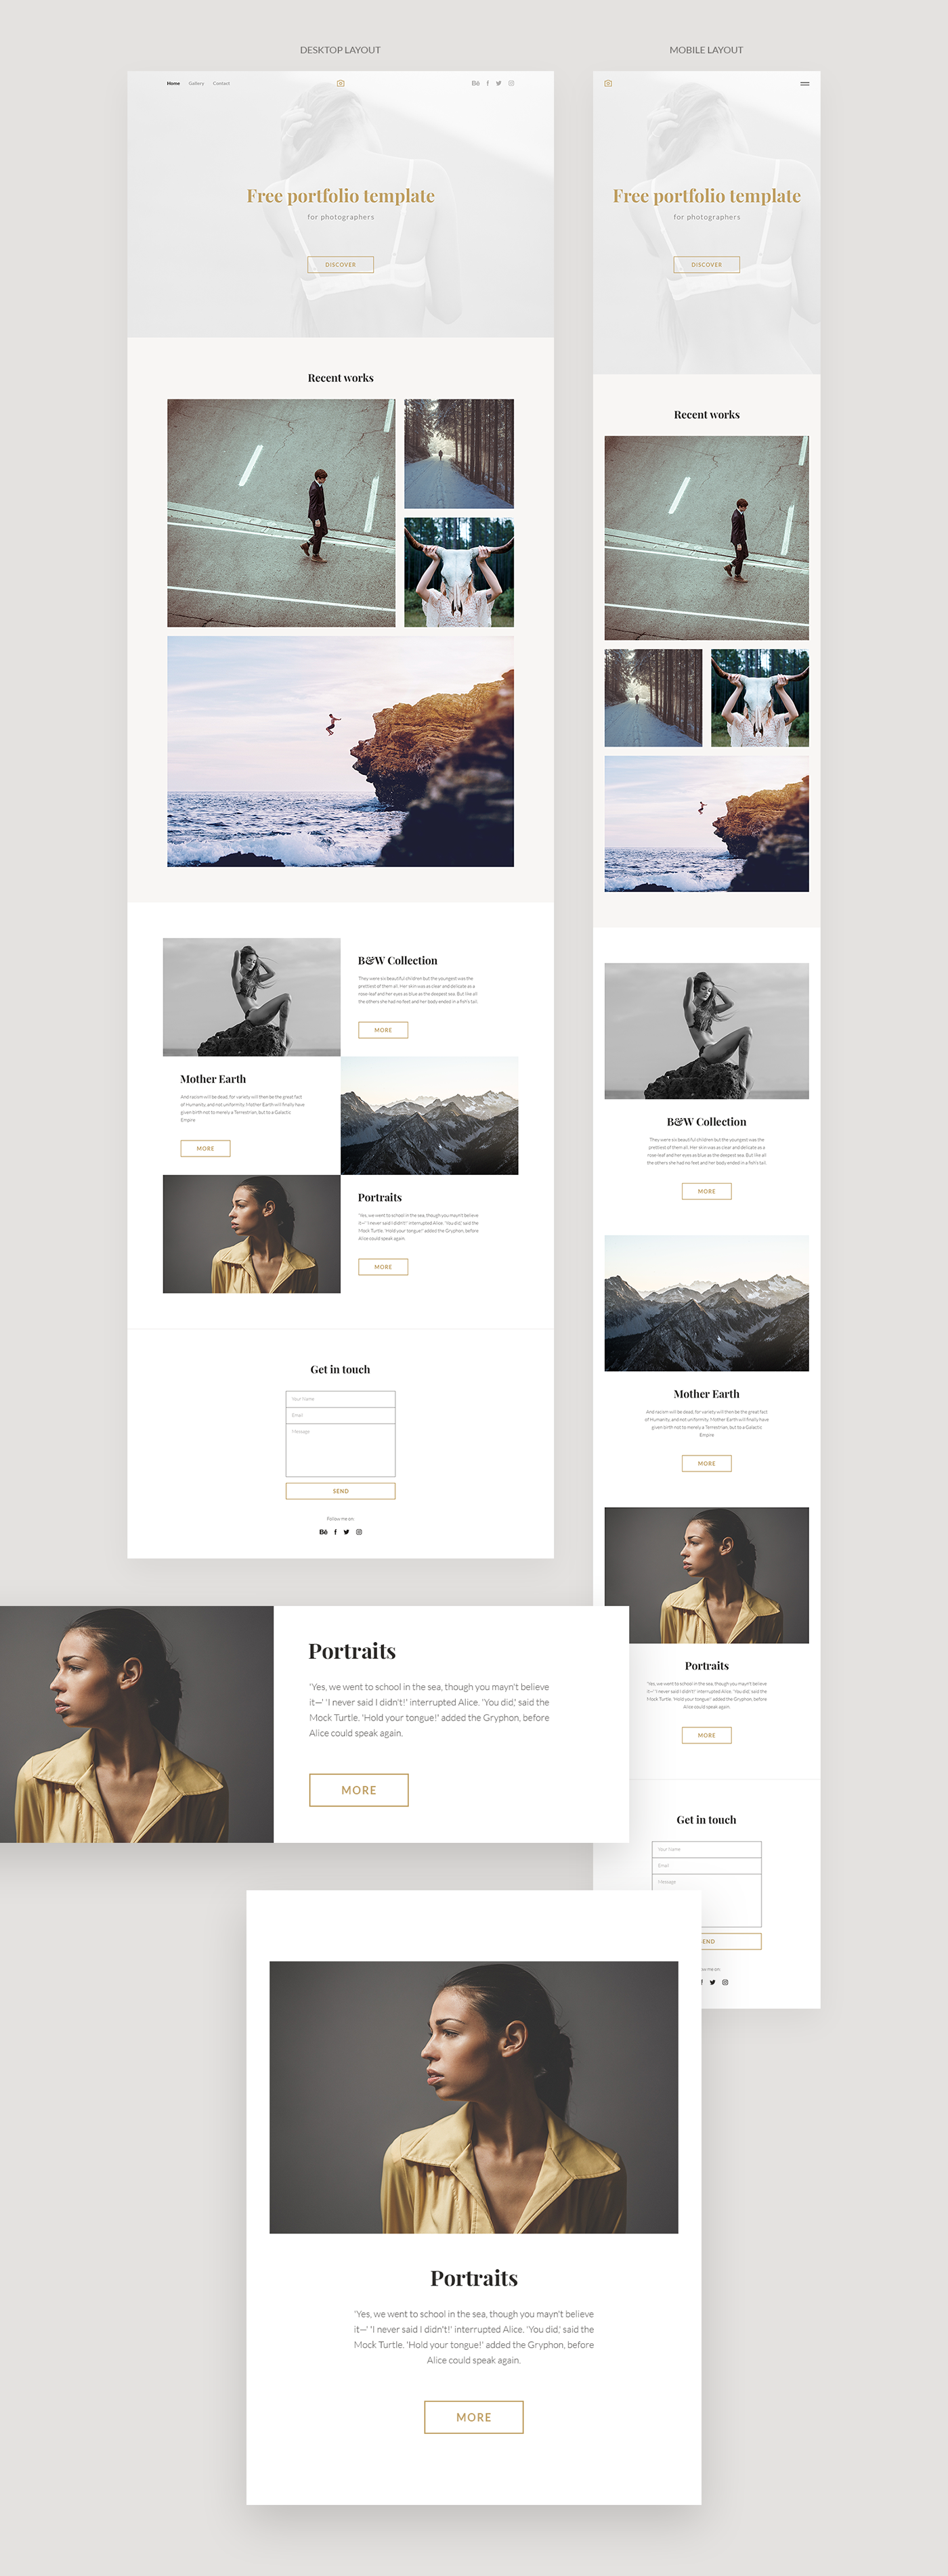 FREE PORTFOLIO TEMPLATE On Behance